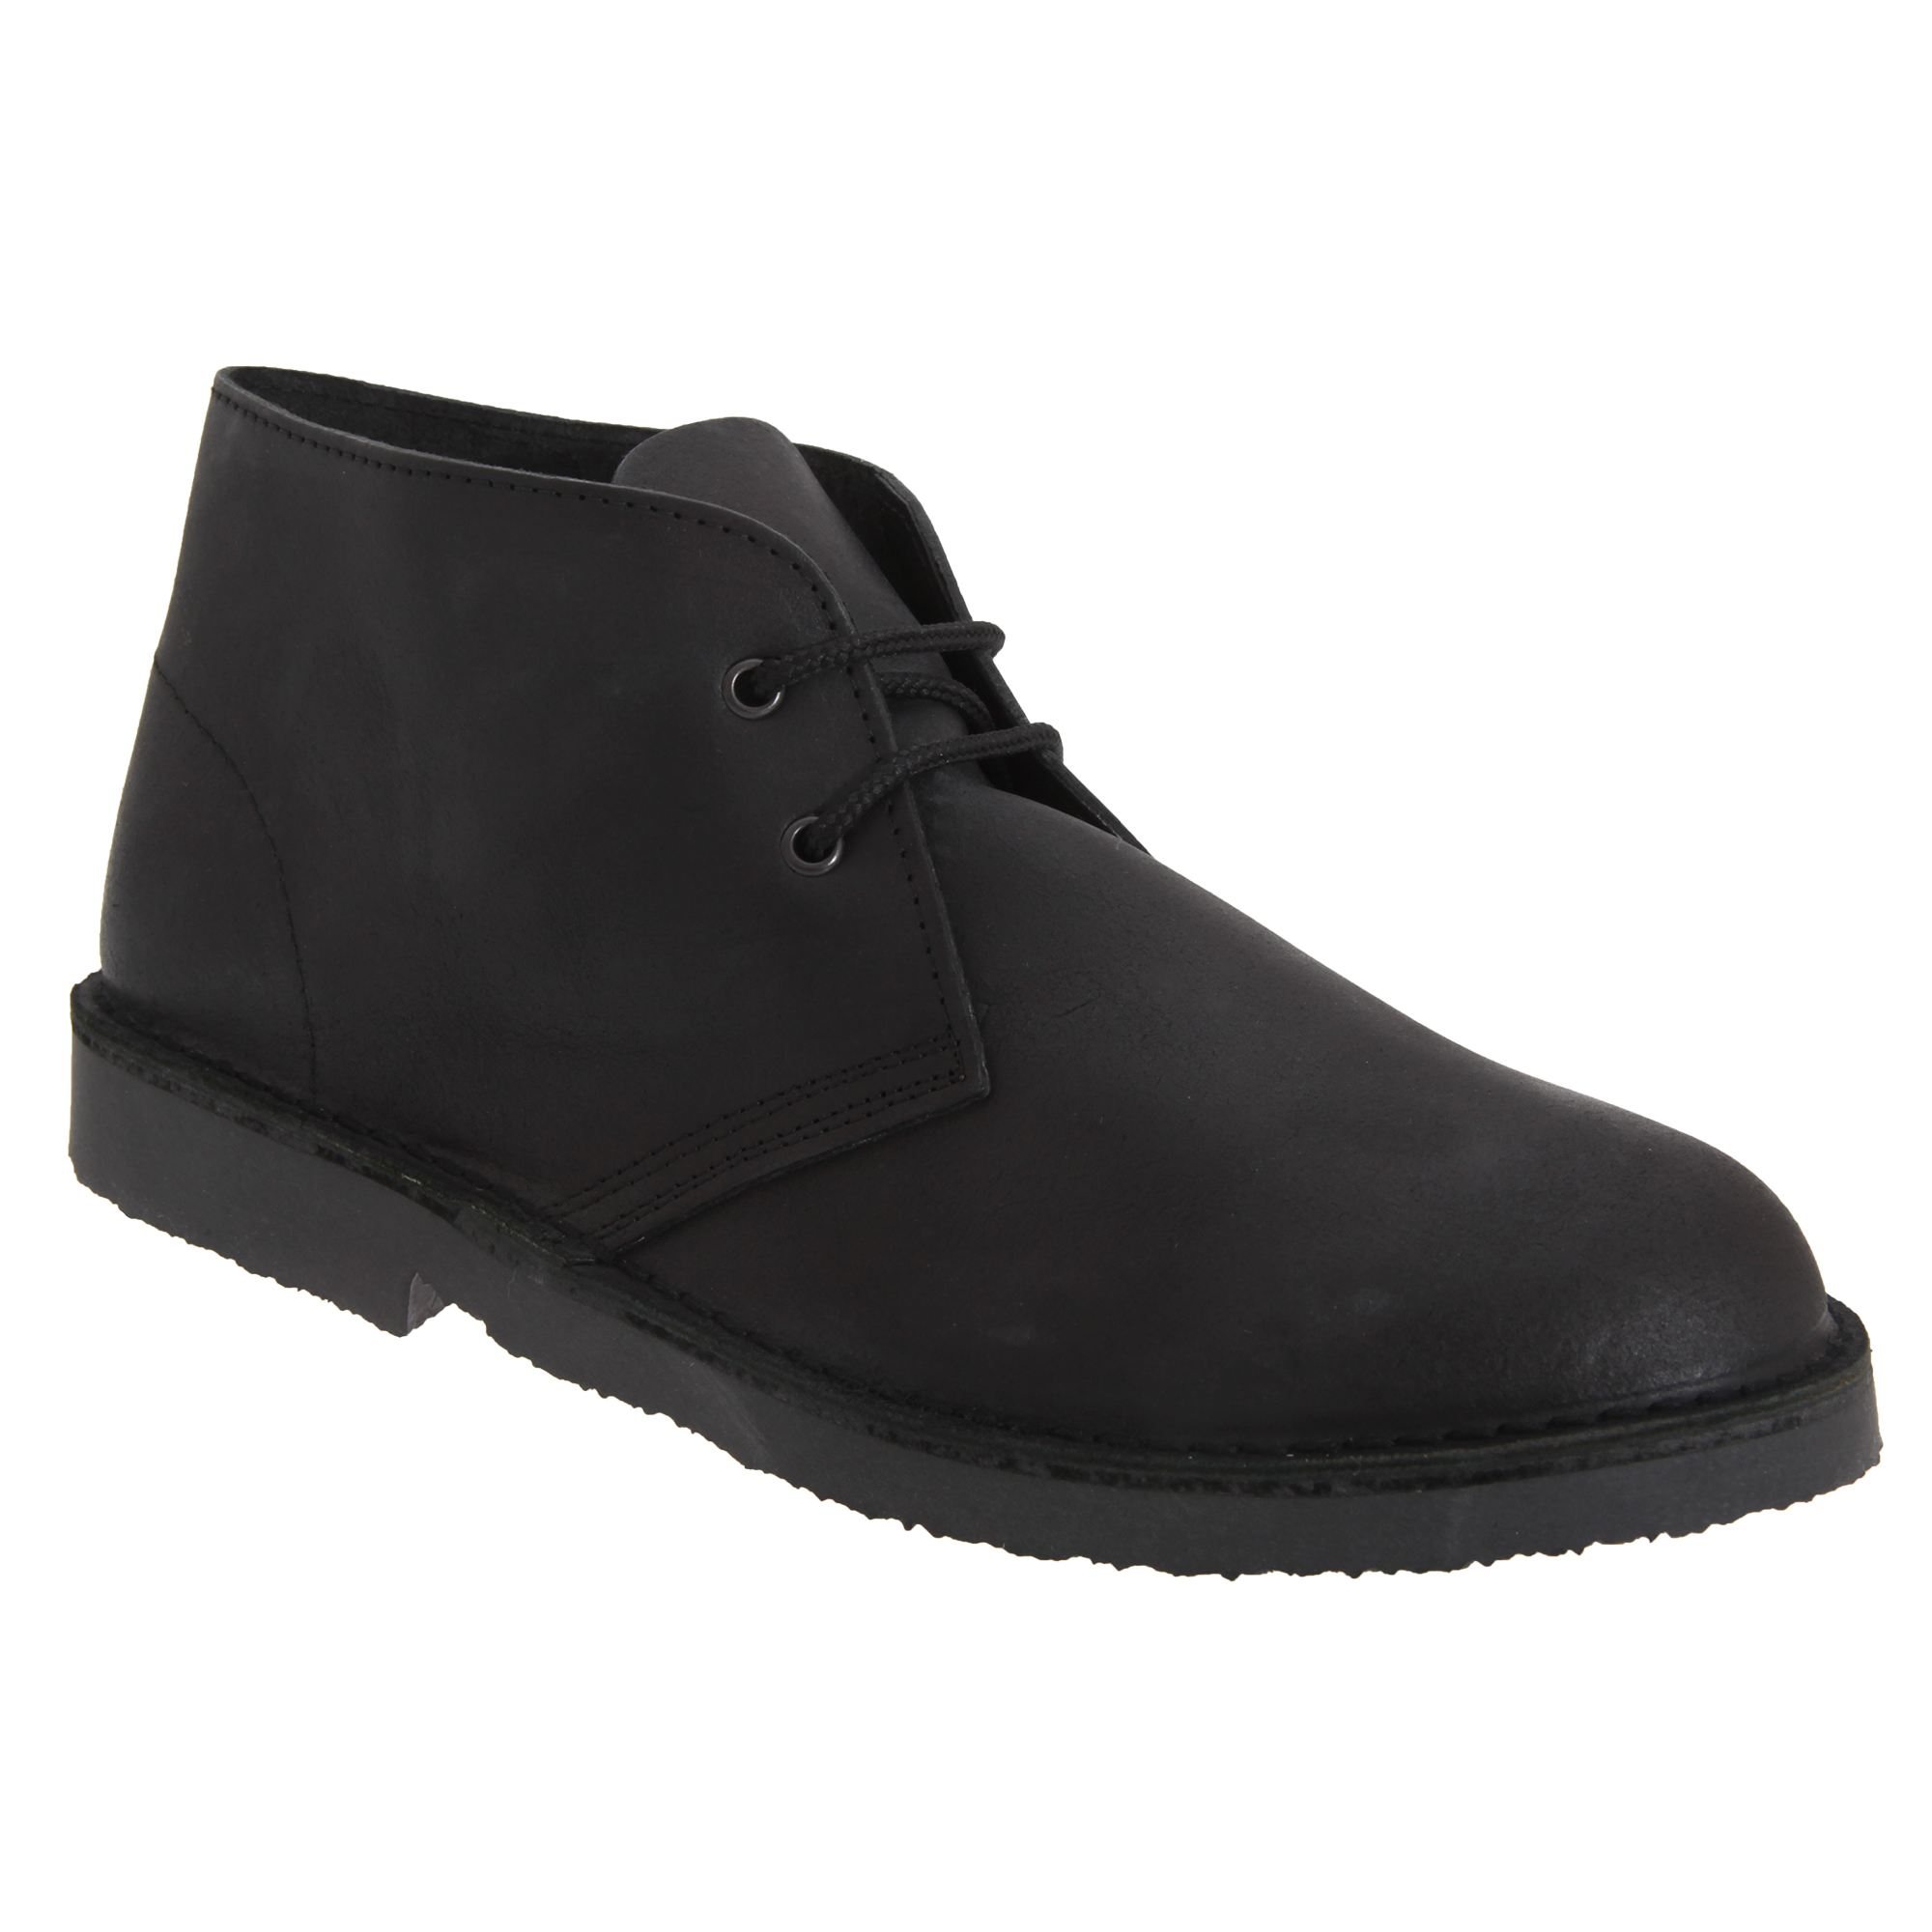 Roamers Adults Unisex Unlined Distressed Leather Desert Boots (7 UK) (Black)